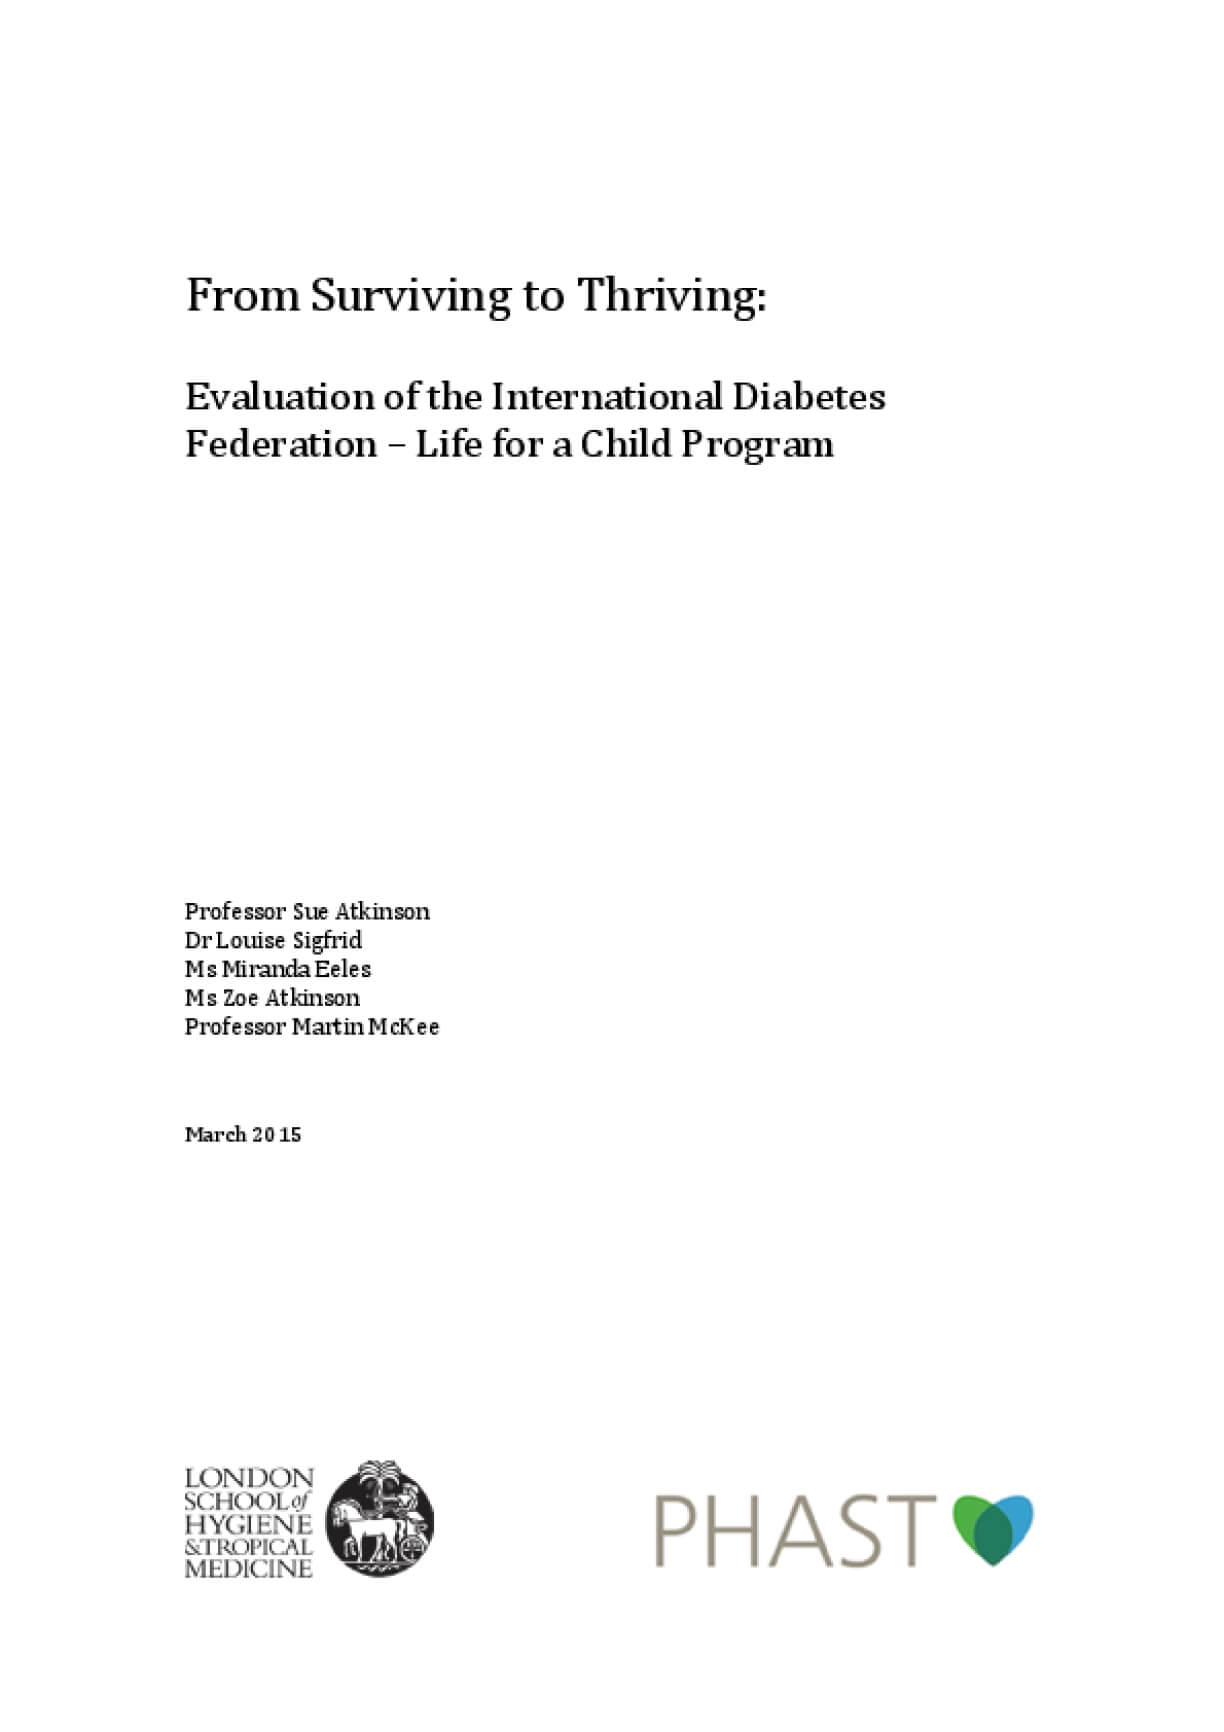 From Surviving to Thriving: Evaluation of the International Diabetes Federation – Life for a Child Program